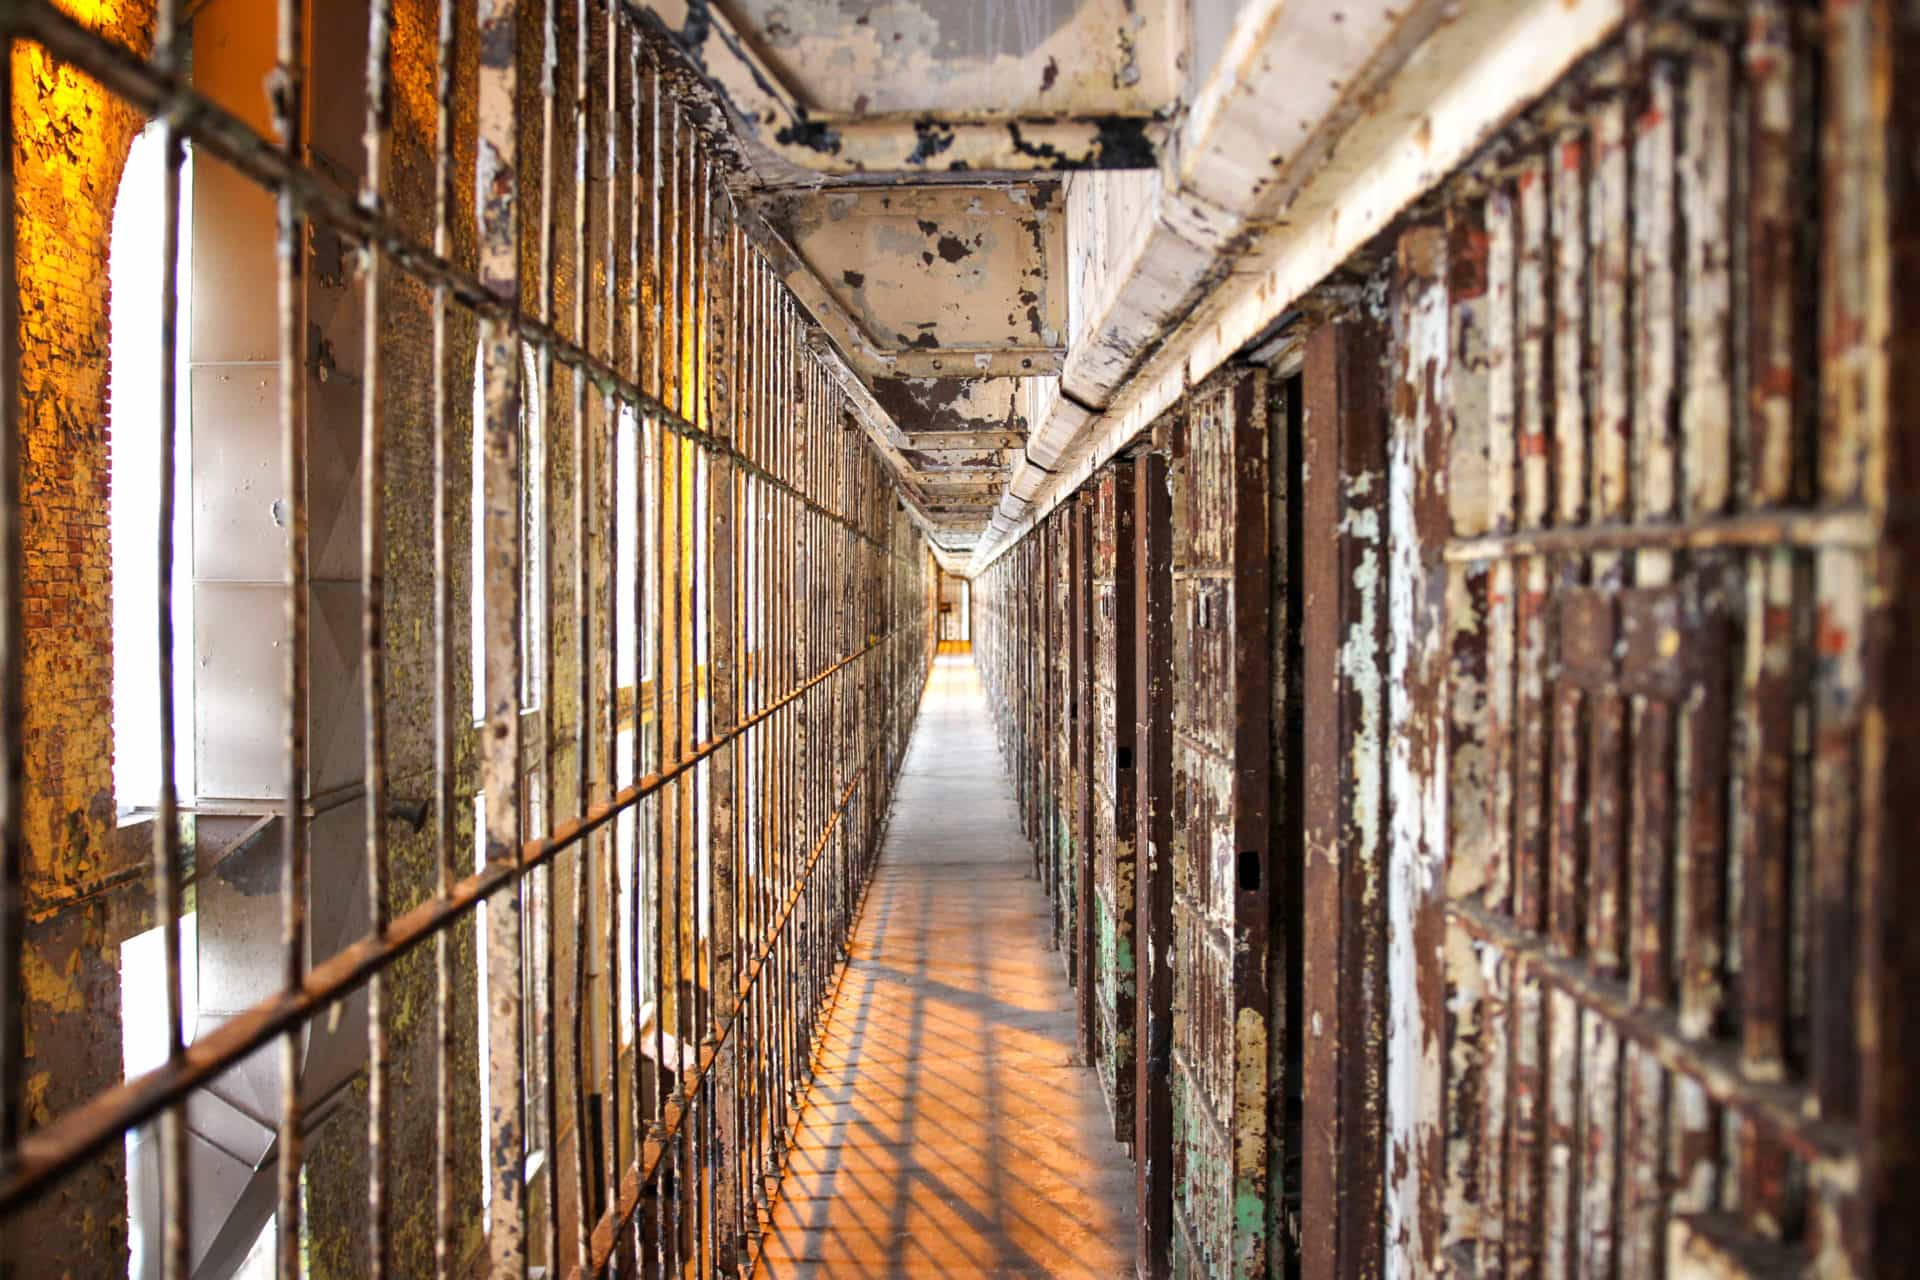 A cell block inside the ohio state reformatory